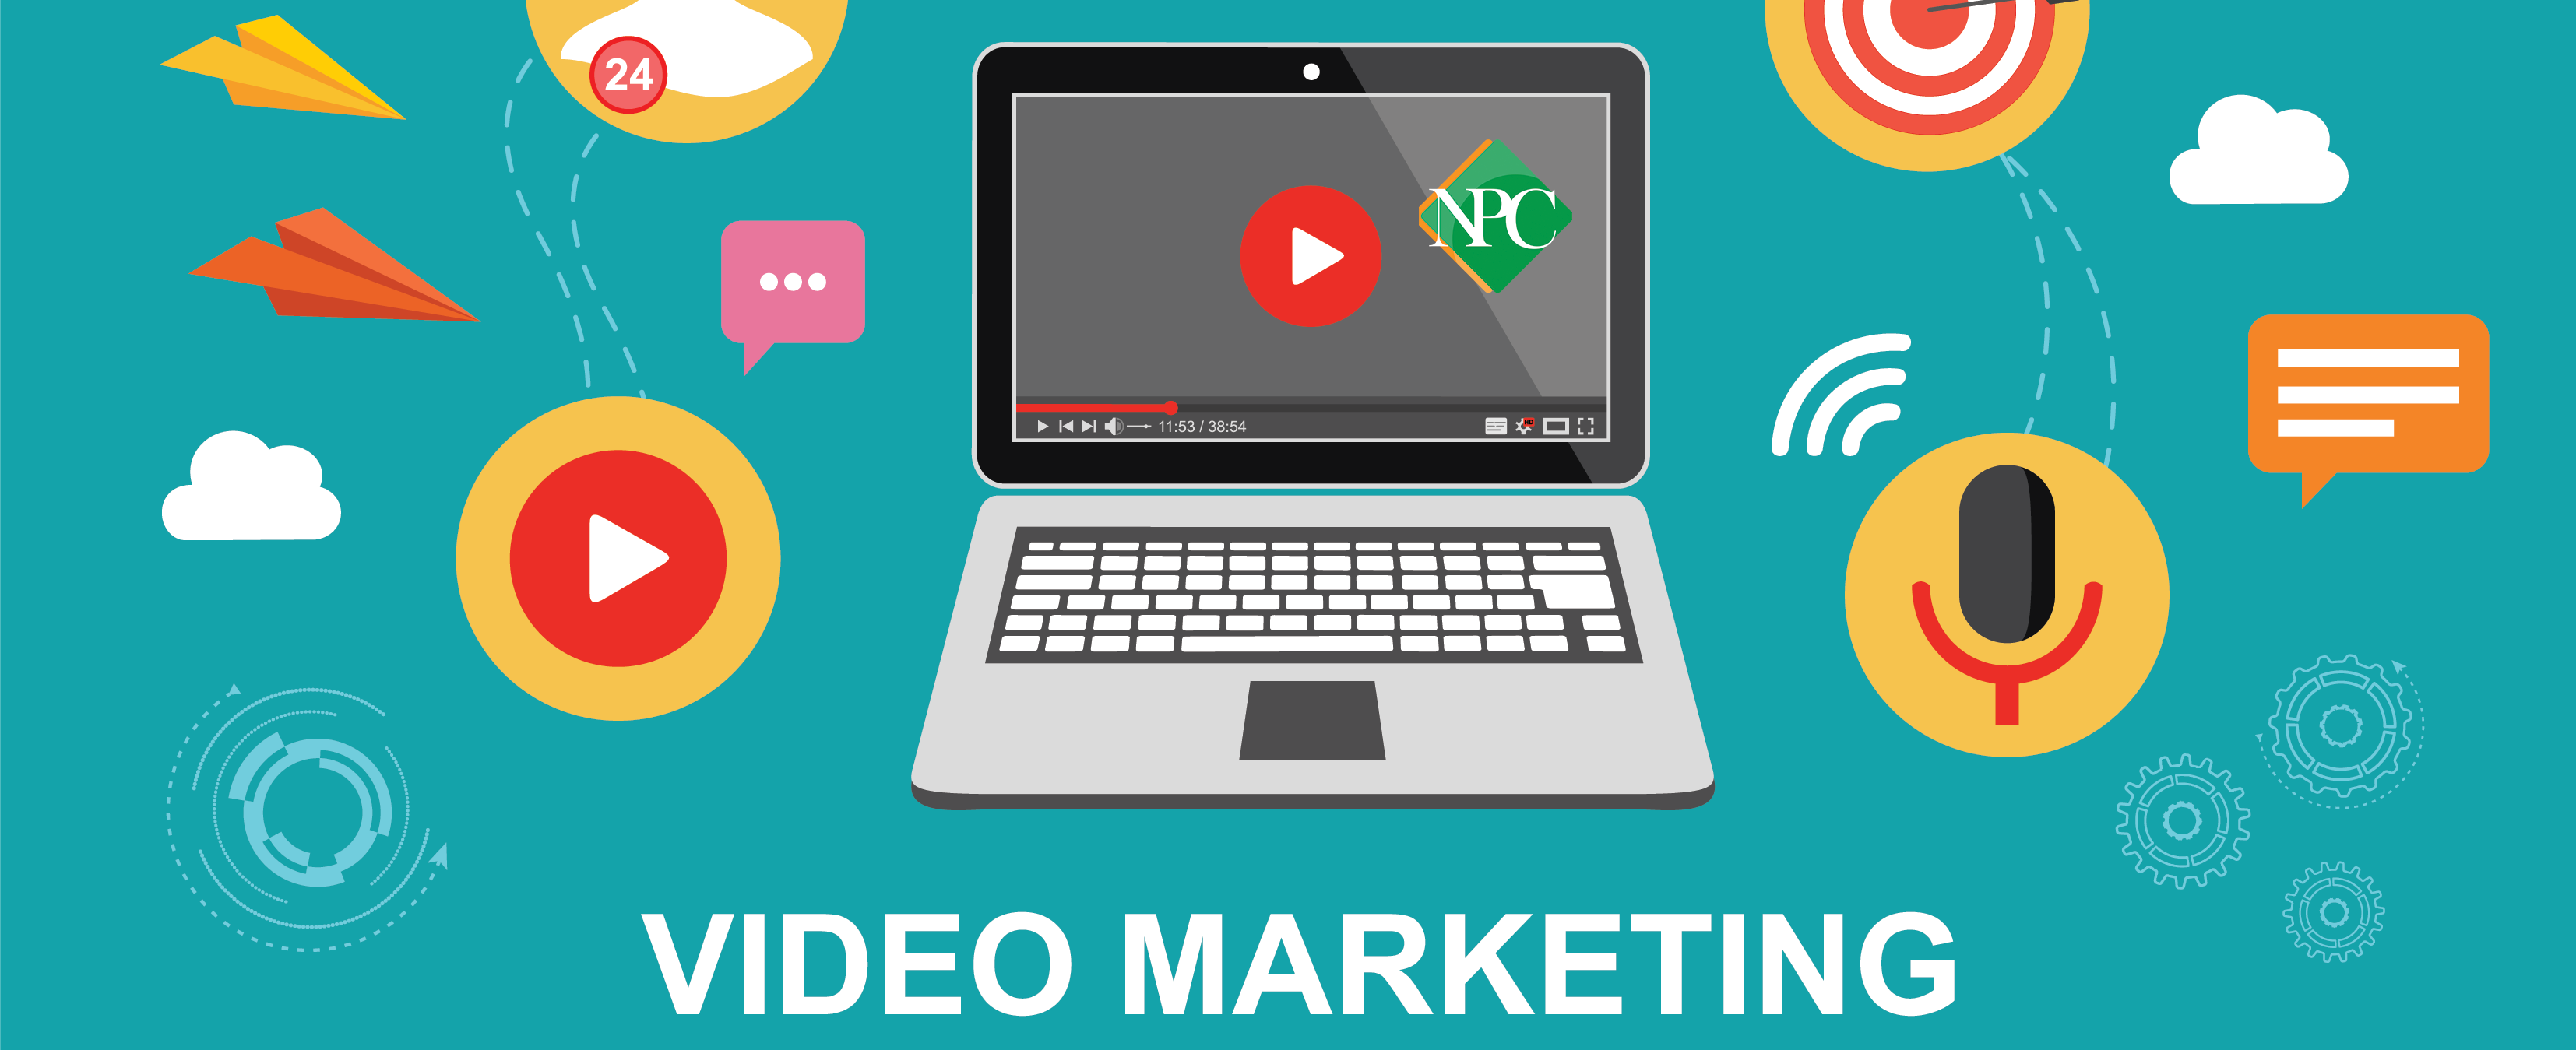 nonprofit.courses video marketing